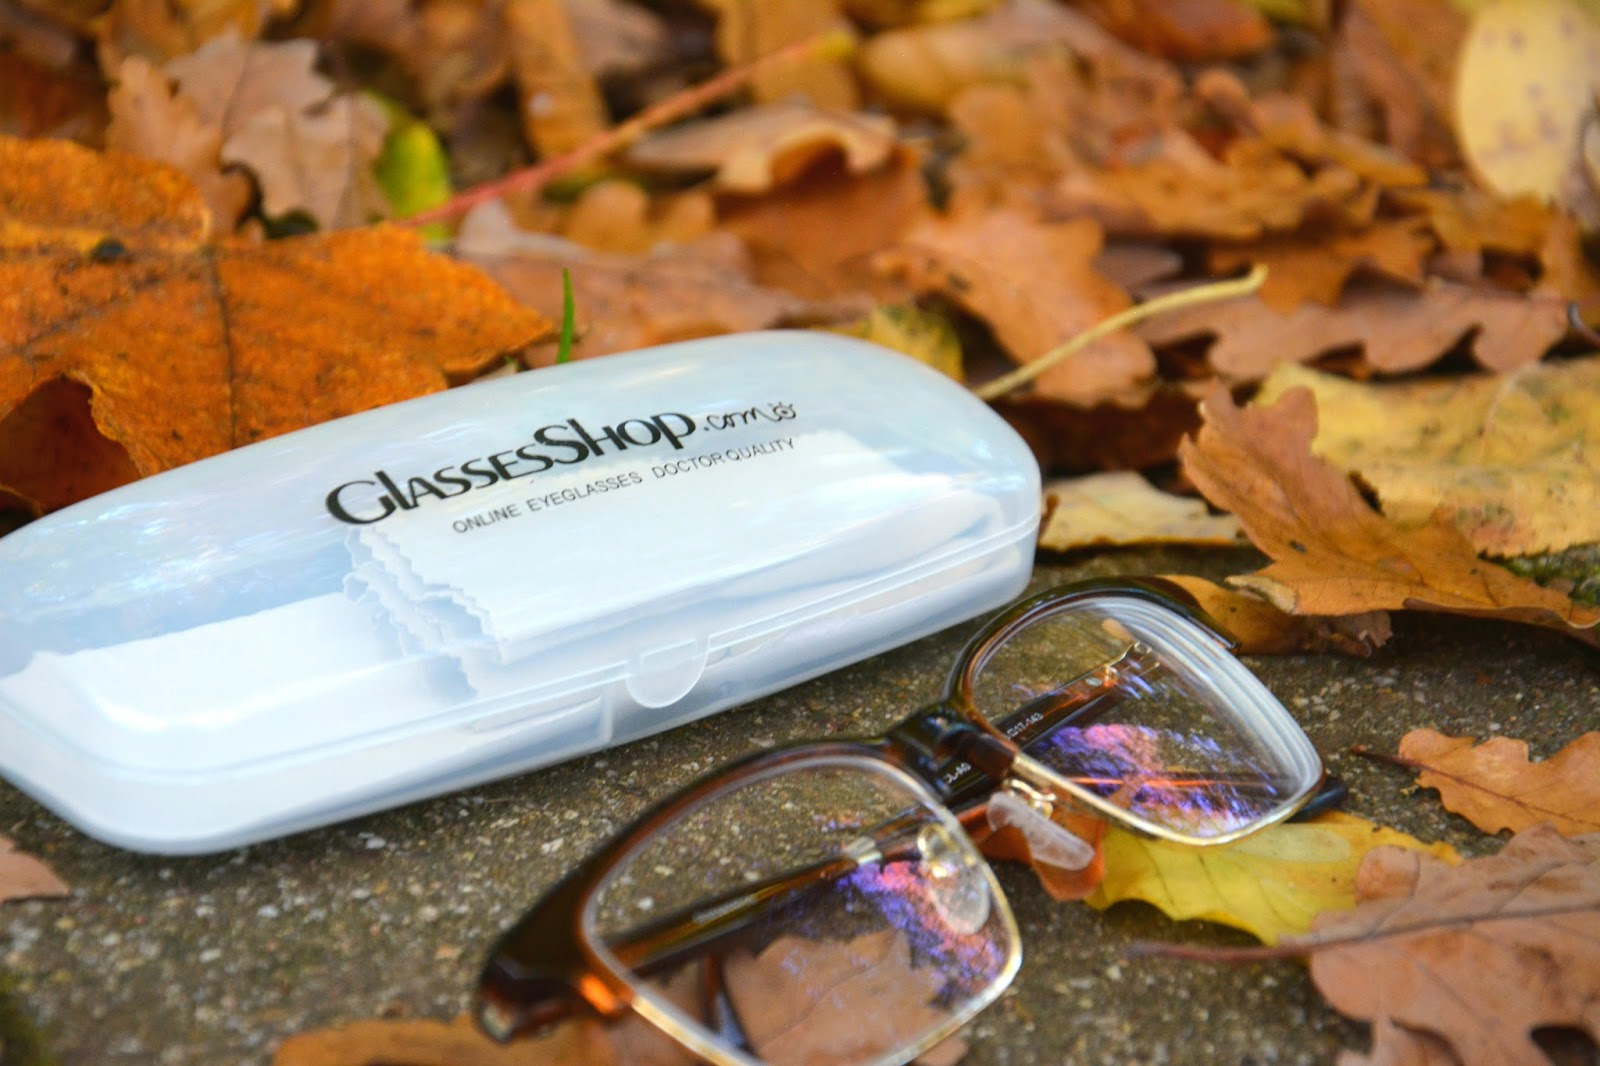 Clifford Wayfarer Glasses; GlassesShop.com; autumnal background